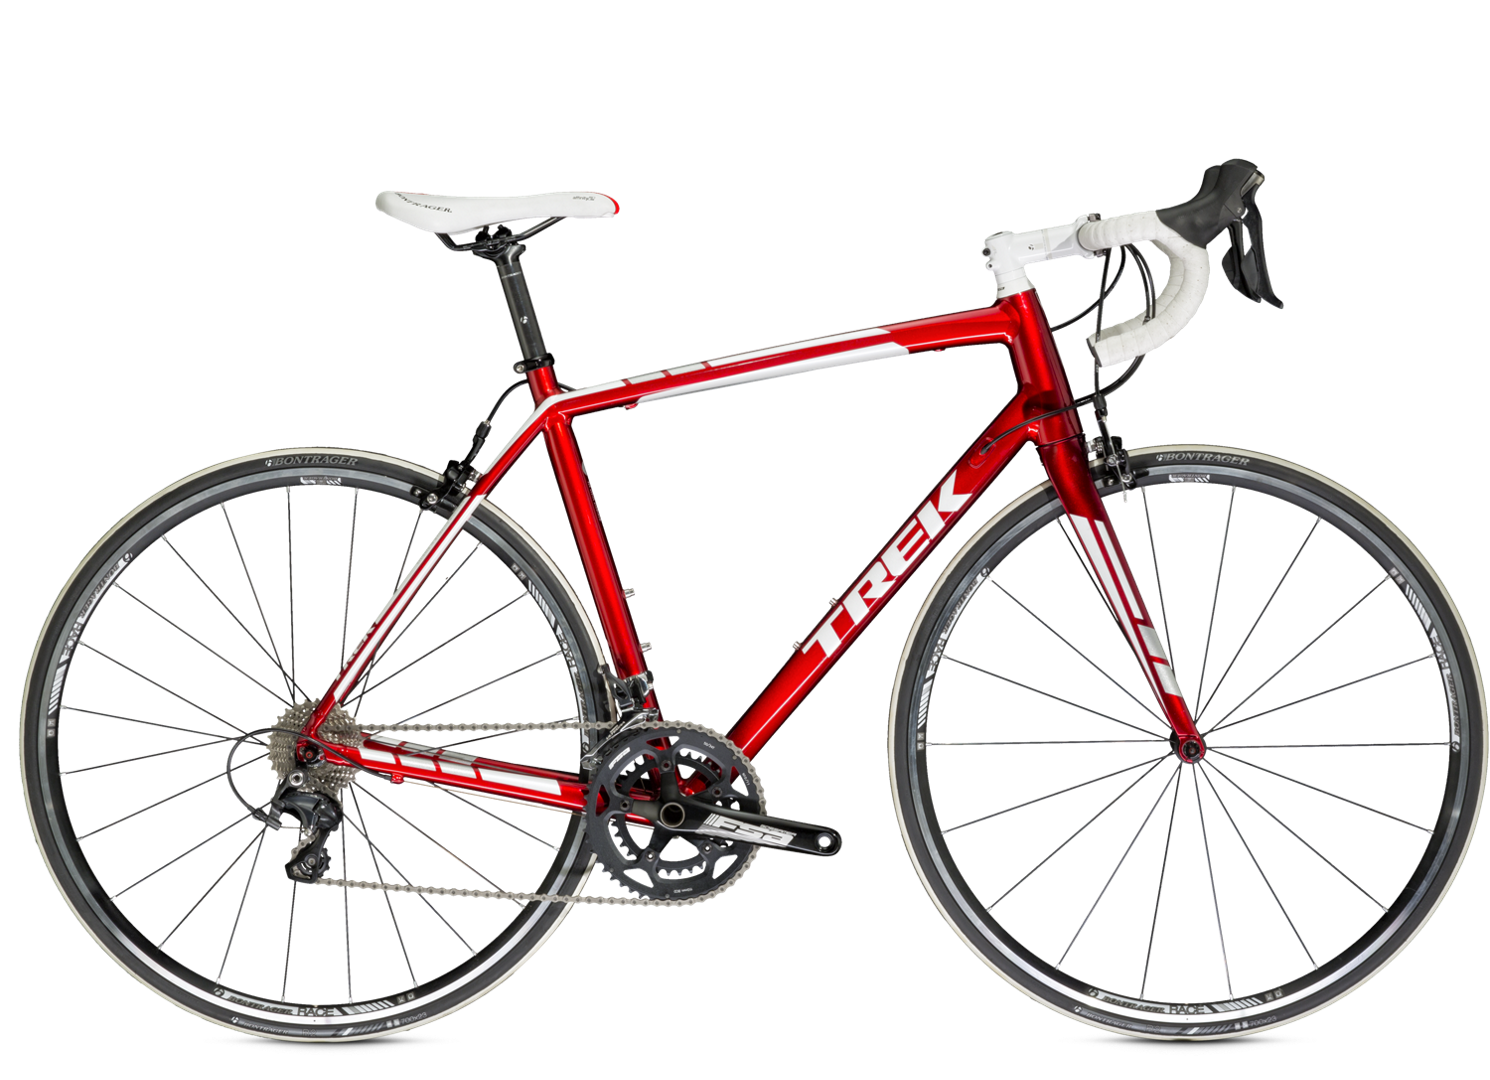 921e968b73d 2014 Madone 2.5 H2 Compact - Bike Archive - Trek Bicycle